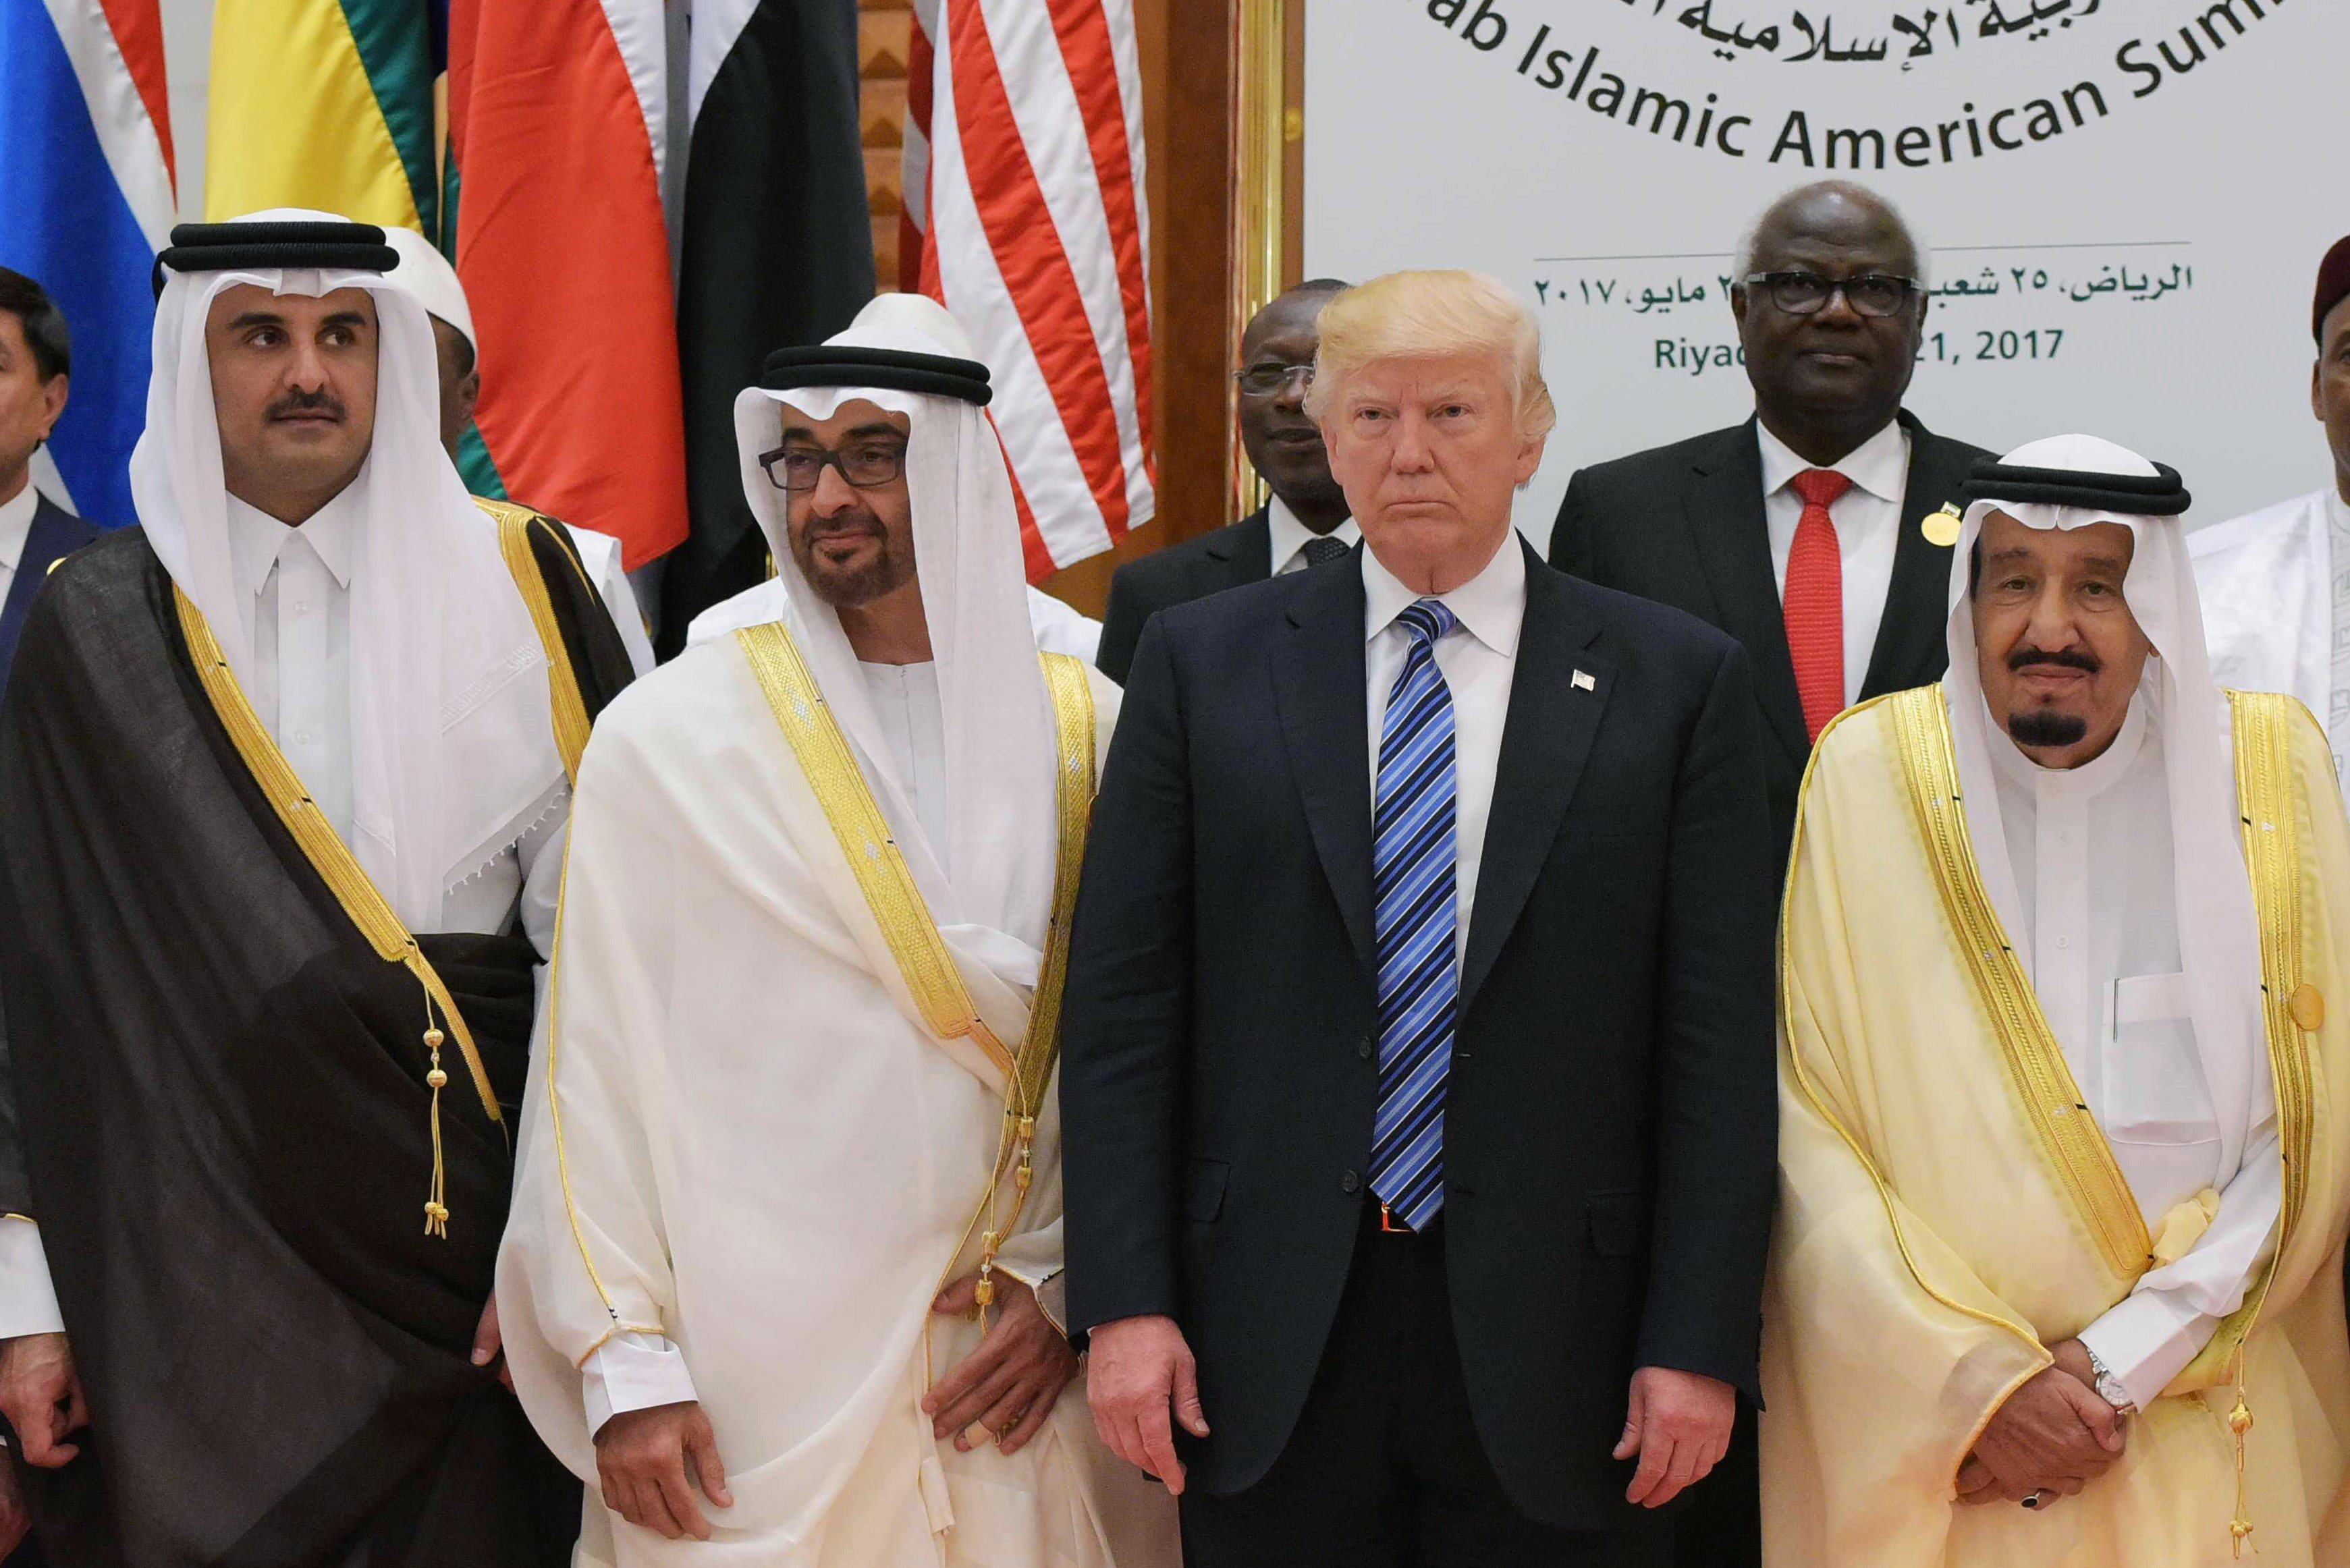 US President Donald Trump, Saudi Arabia's King, Crown Prince of Abu Dhabi and Qatr Emir pose for a group photo during the Arab Islamic American Summit at on 21 May, 2017 (AFP)